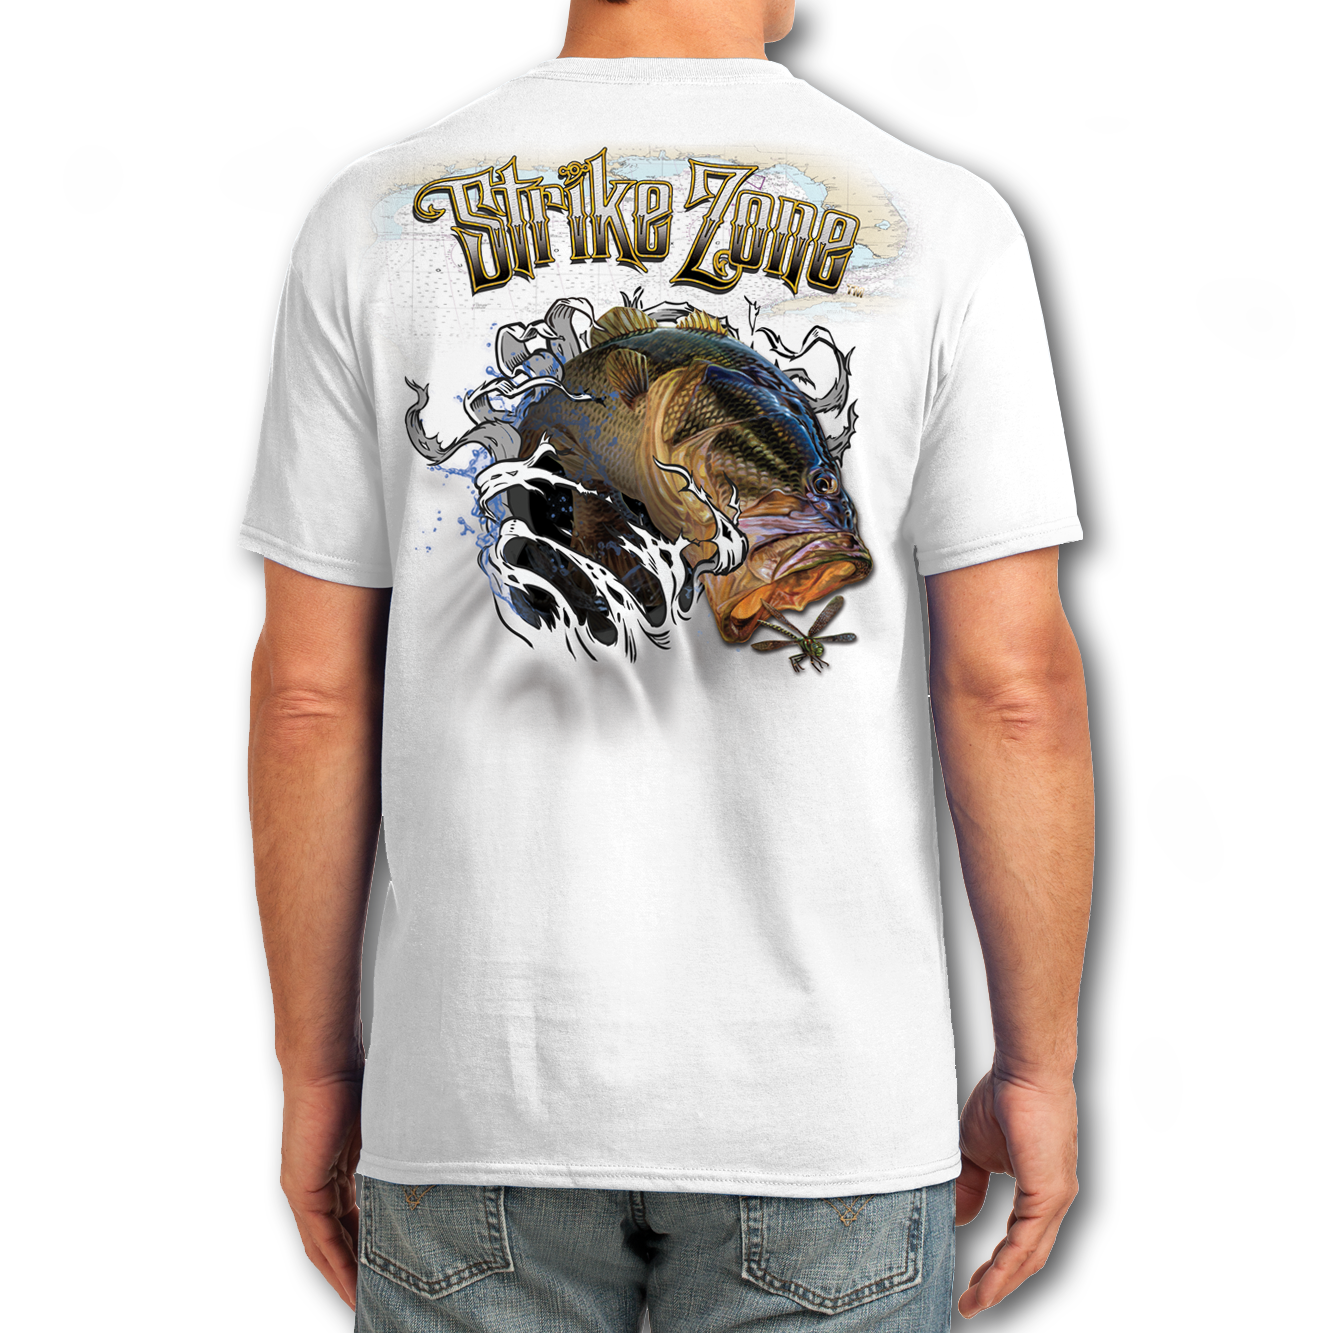 t-shirt-short-sleeve-white-jason-mathias-art-largemouth-bass-strike-zone.png